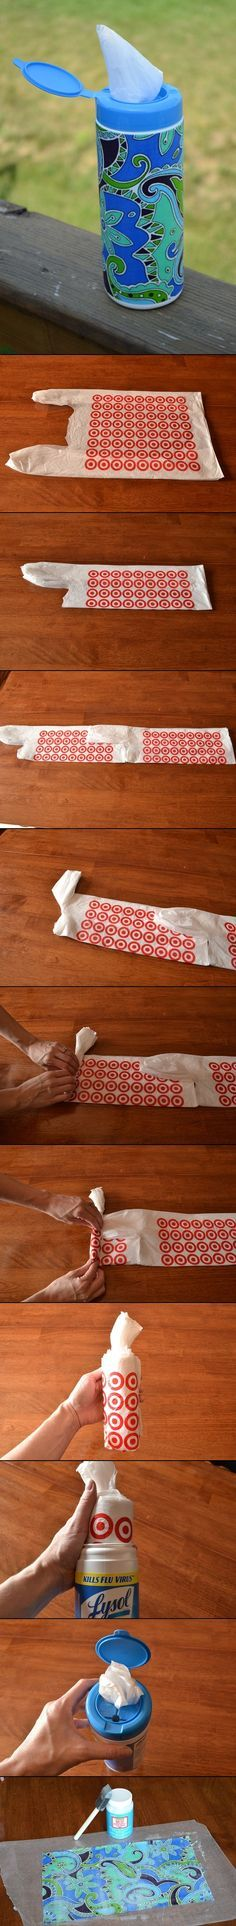 DIY plastic bag dispenser (with tutorial). I've been wondering how to roll the bags ...